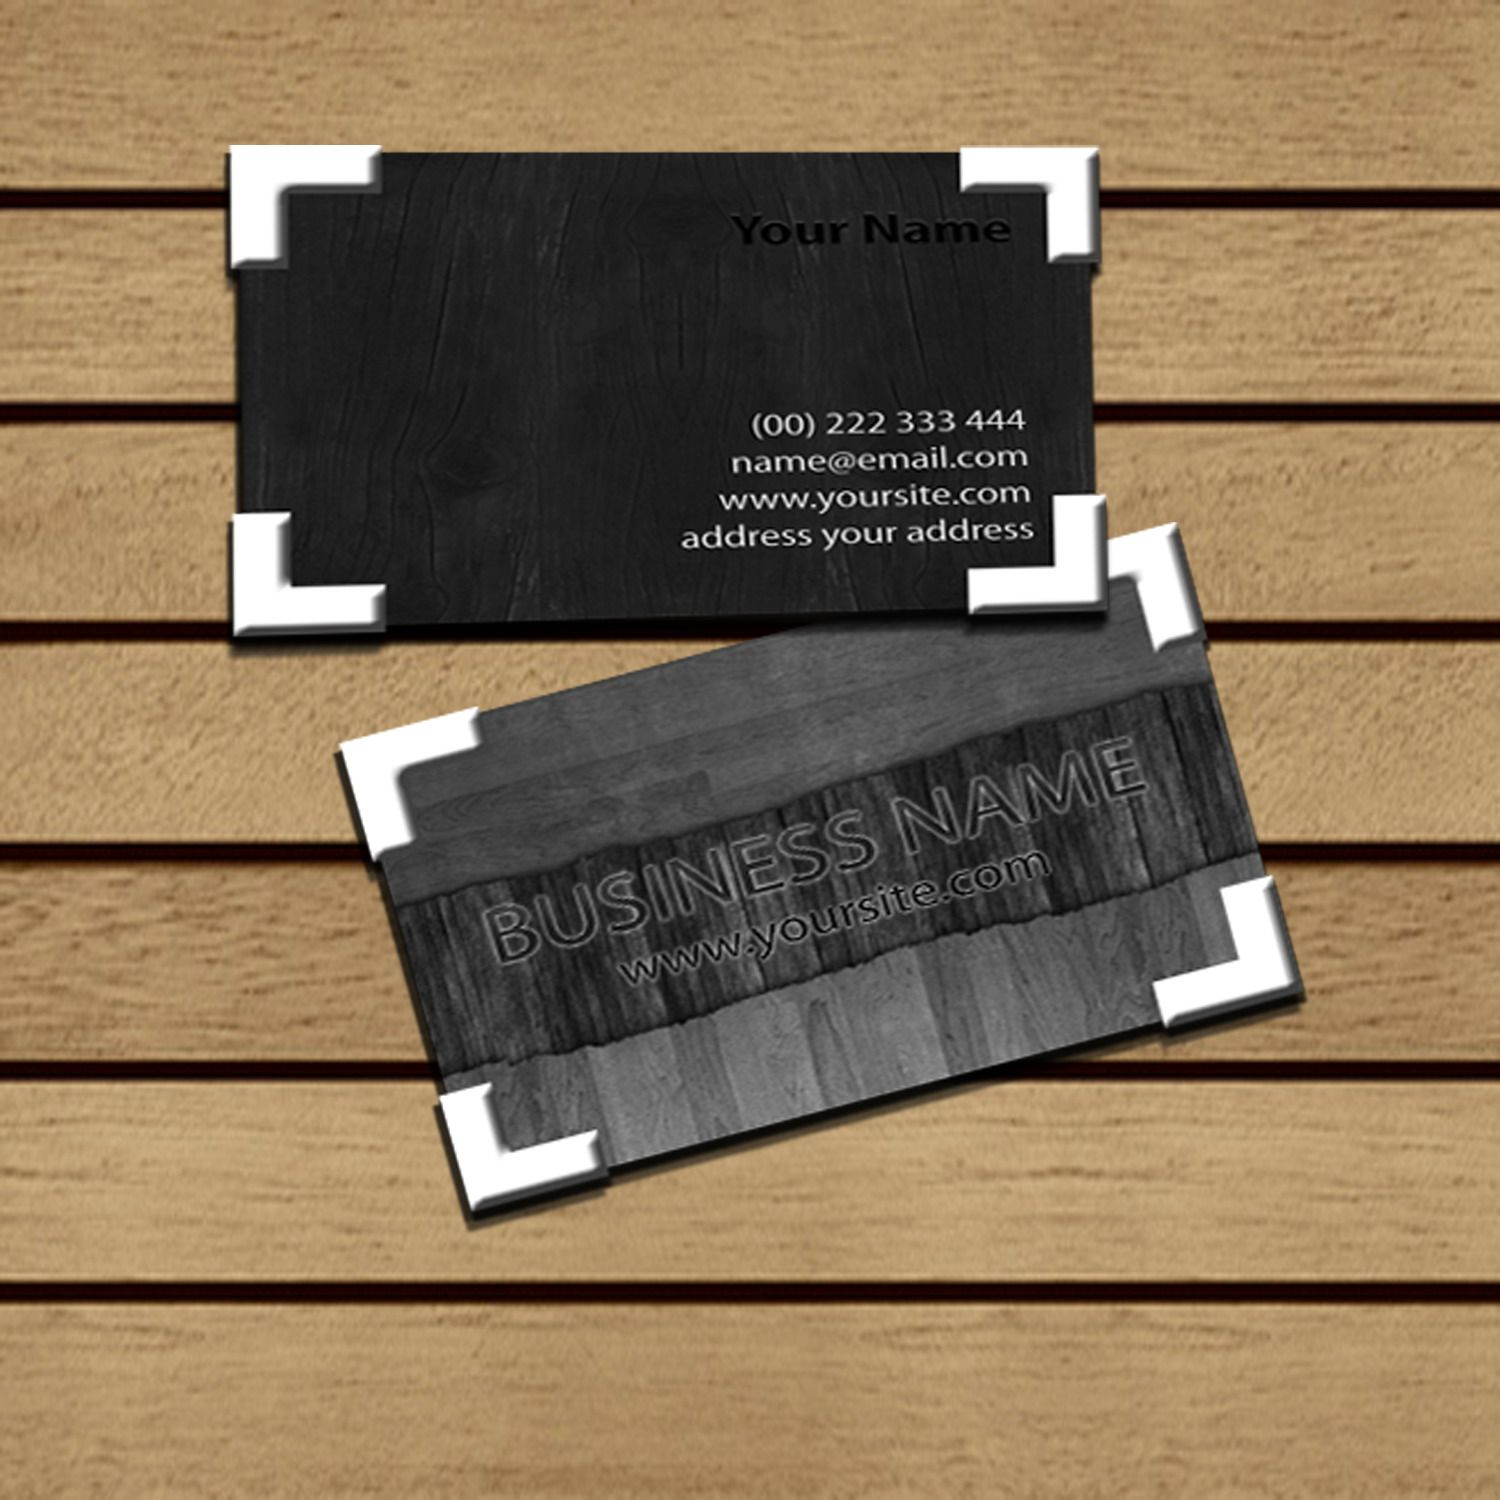 Business card template psd download gallery templates example business card template psd download choice image templates free download business card template psd images templates alramifo Choice Image